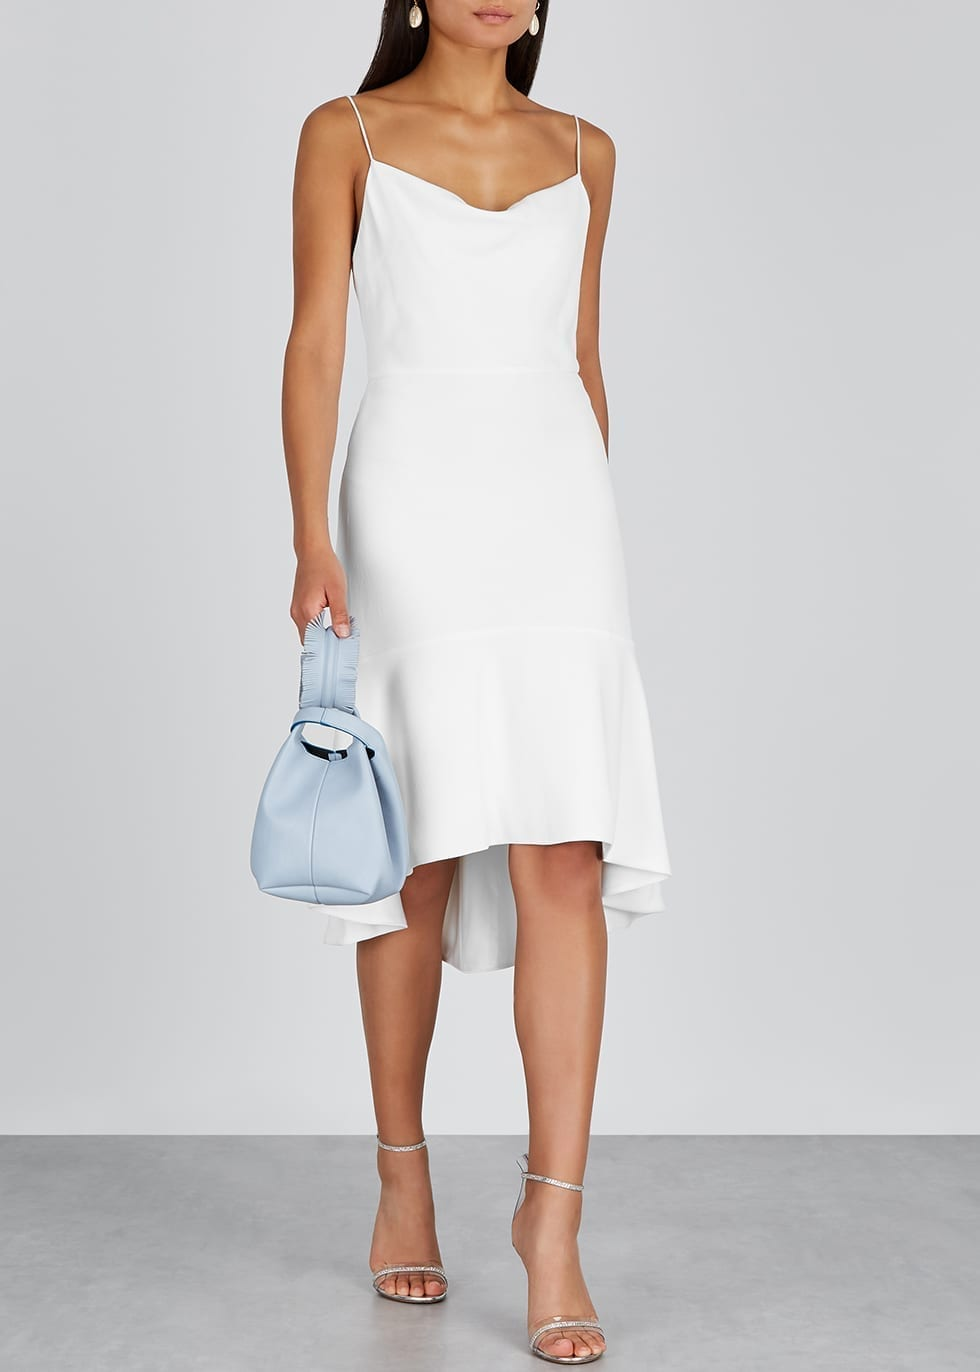 ALICE + OLIVIA Adriana Ivory Crepe Dress